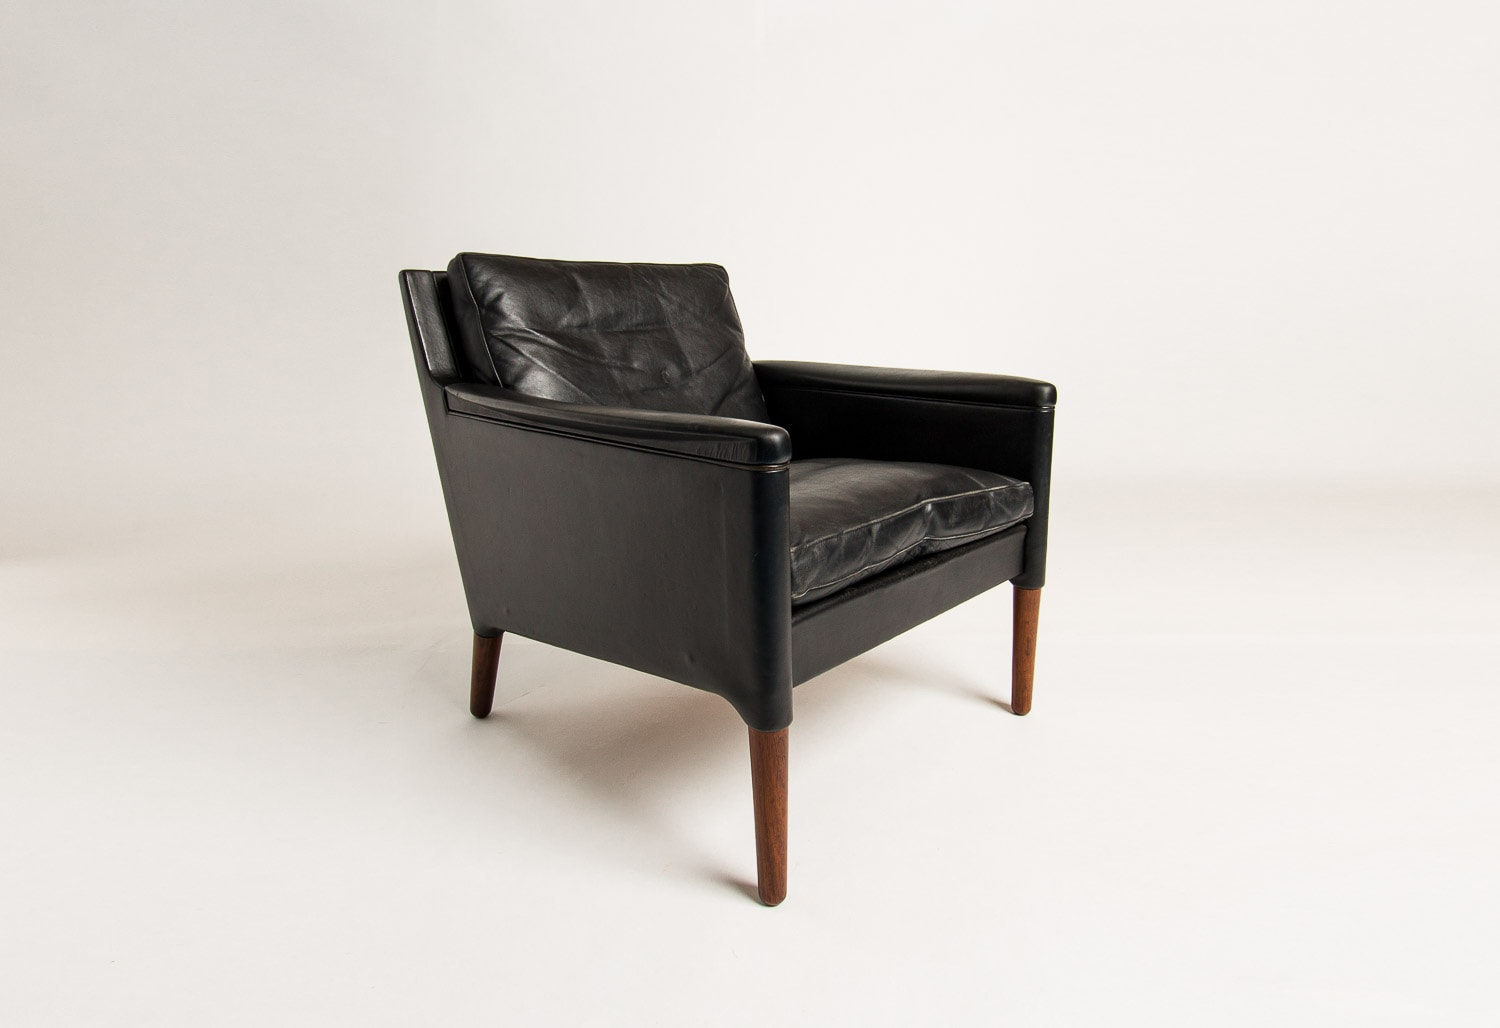 Danish armchair leather rosewood mid century modern 1950's